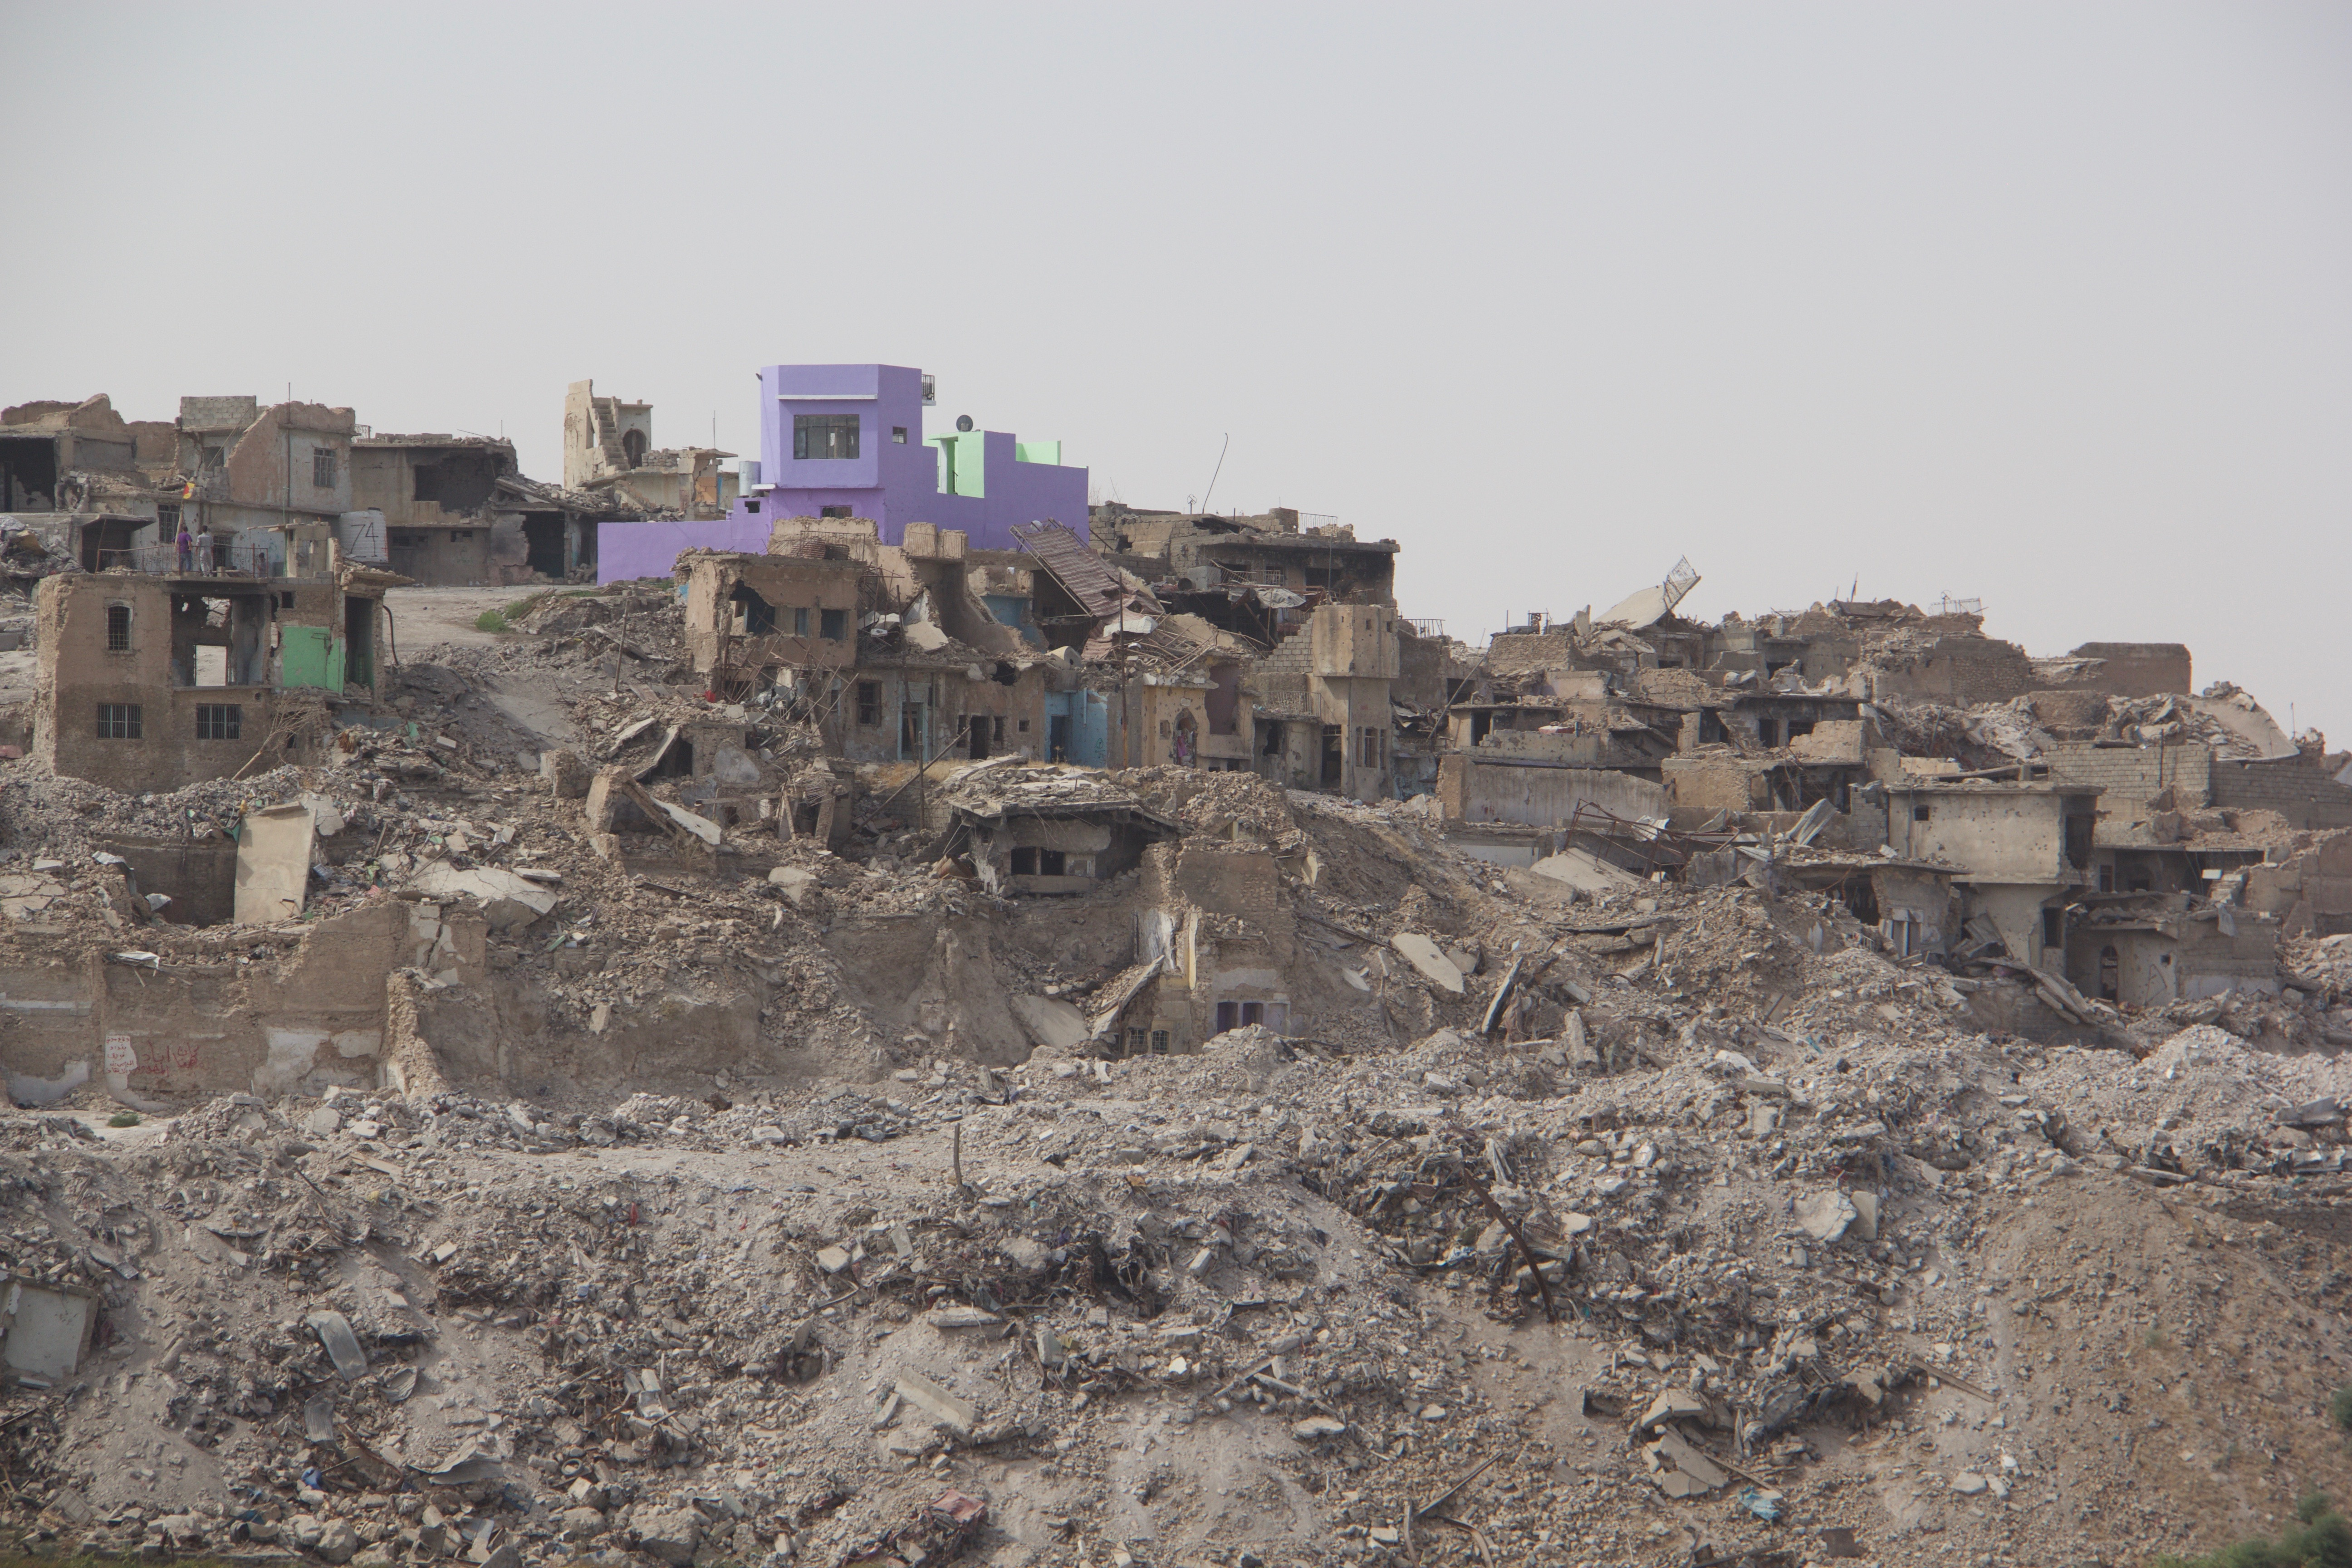 Image: One fan of the color purple has restored a house in the otherwise devastated Old City of Mosul. (Kevin Clarke)